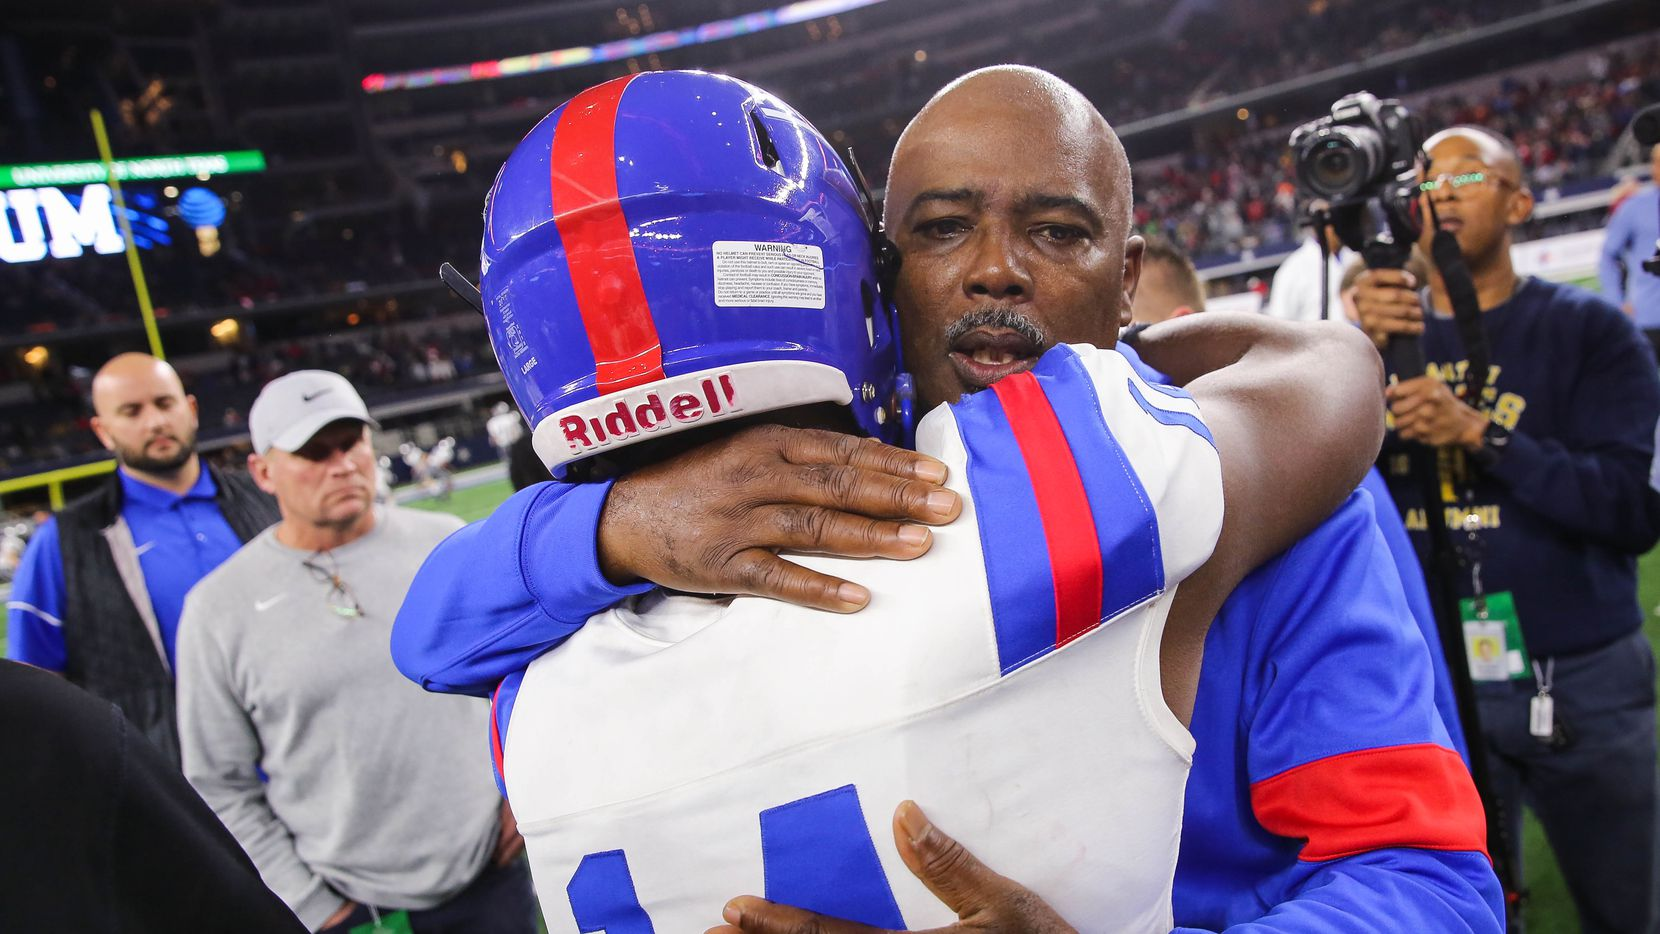 Duncanville's coach Reginald Samples consoles quarterback Chris Parson (14) after losing a Class 6A Division I state championship game against North Shore at the AT&T Stadium in Arlington, on Saturday, December 21, 2019. North Shore won 31-17. (Juan Figueroa/The Dallas Morning News)